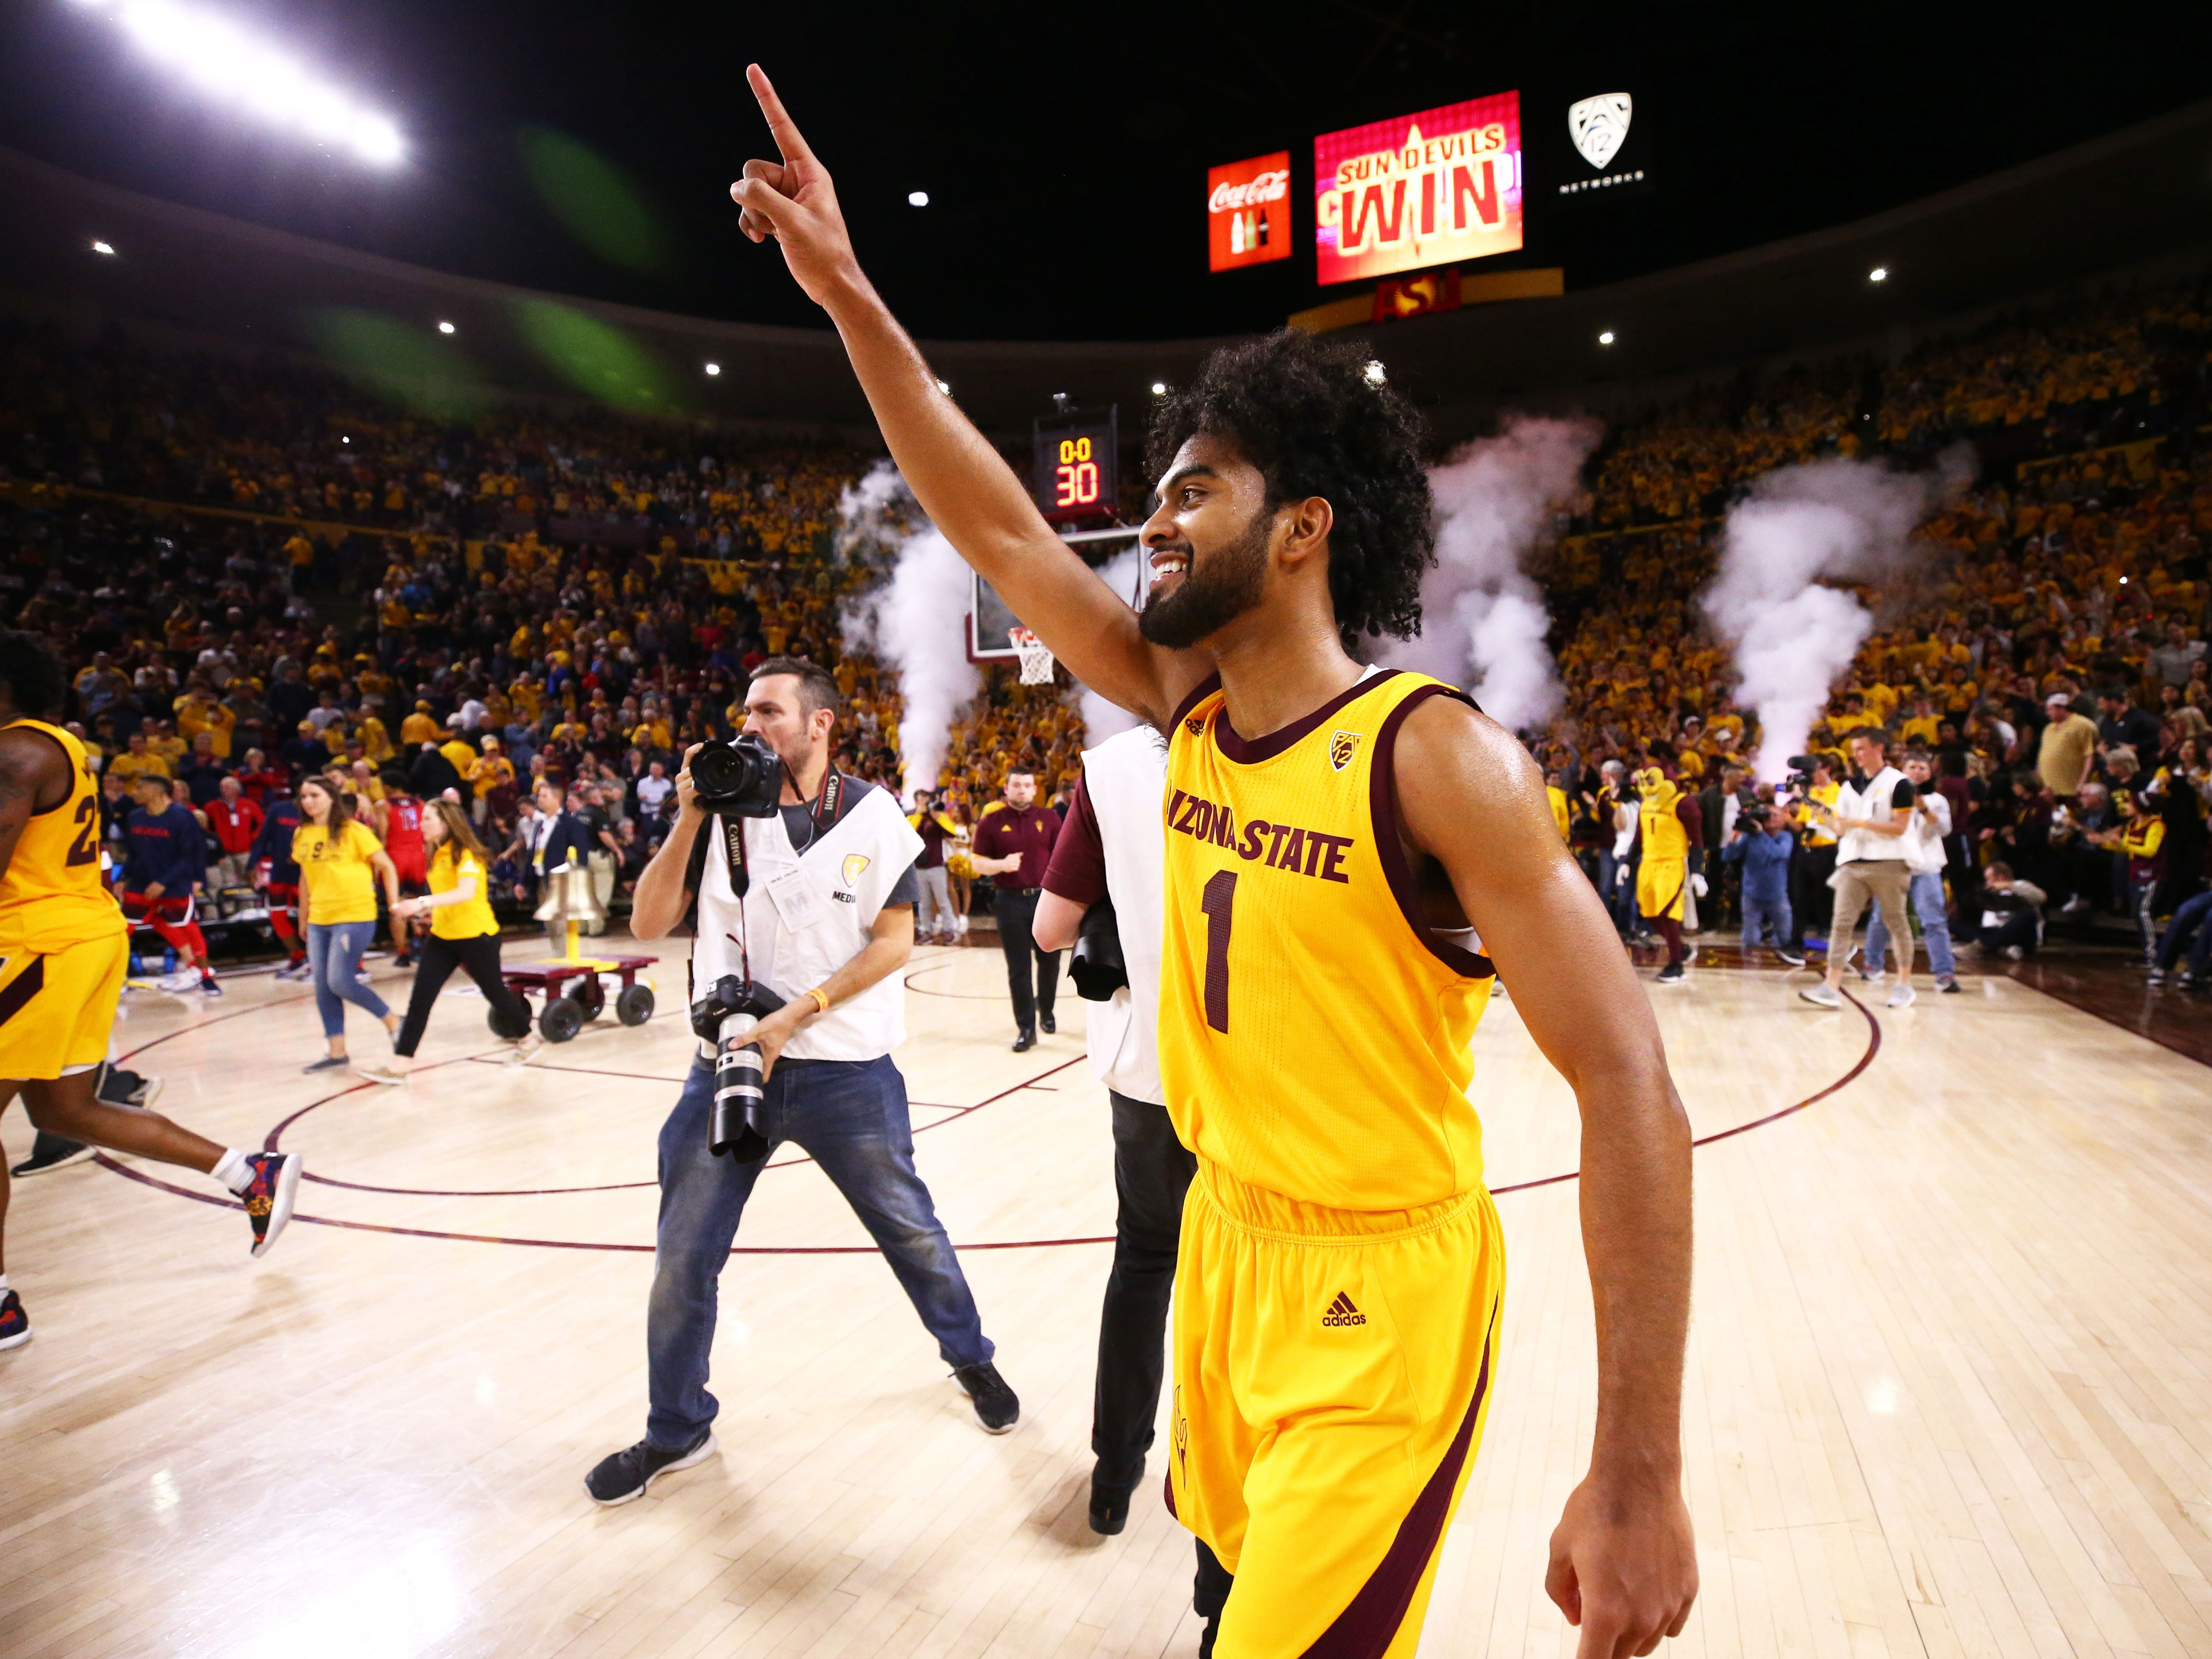 Arizona State guard Remy Martin celebrates their overtime win against Arizona on Jan. 31 at Wells Fargo Arena in Tempe.